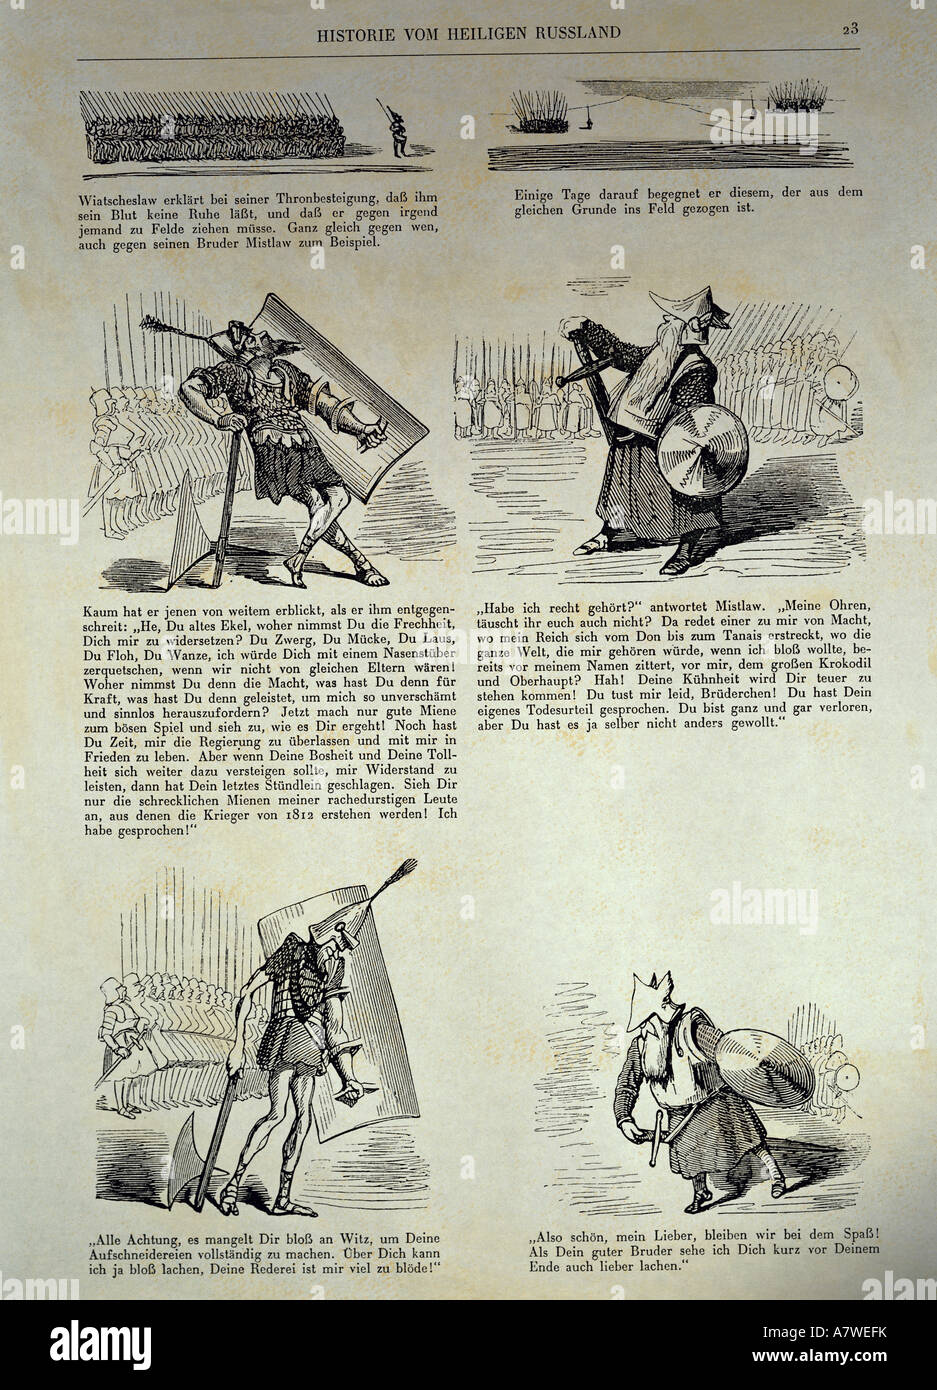 fine arts, Doré, Gustave (1832 - 1883), 'History of the Holy Russia', 1854, German edition, page 23, - Stock Image